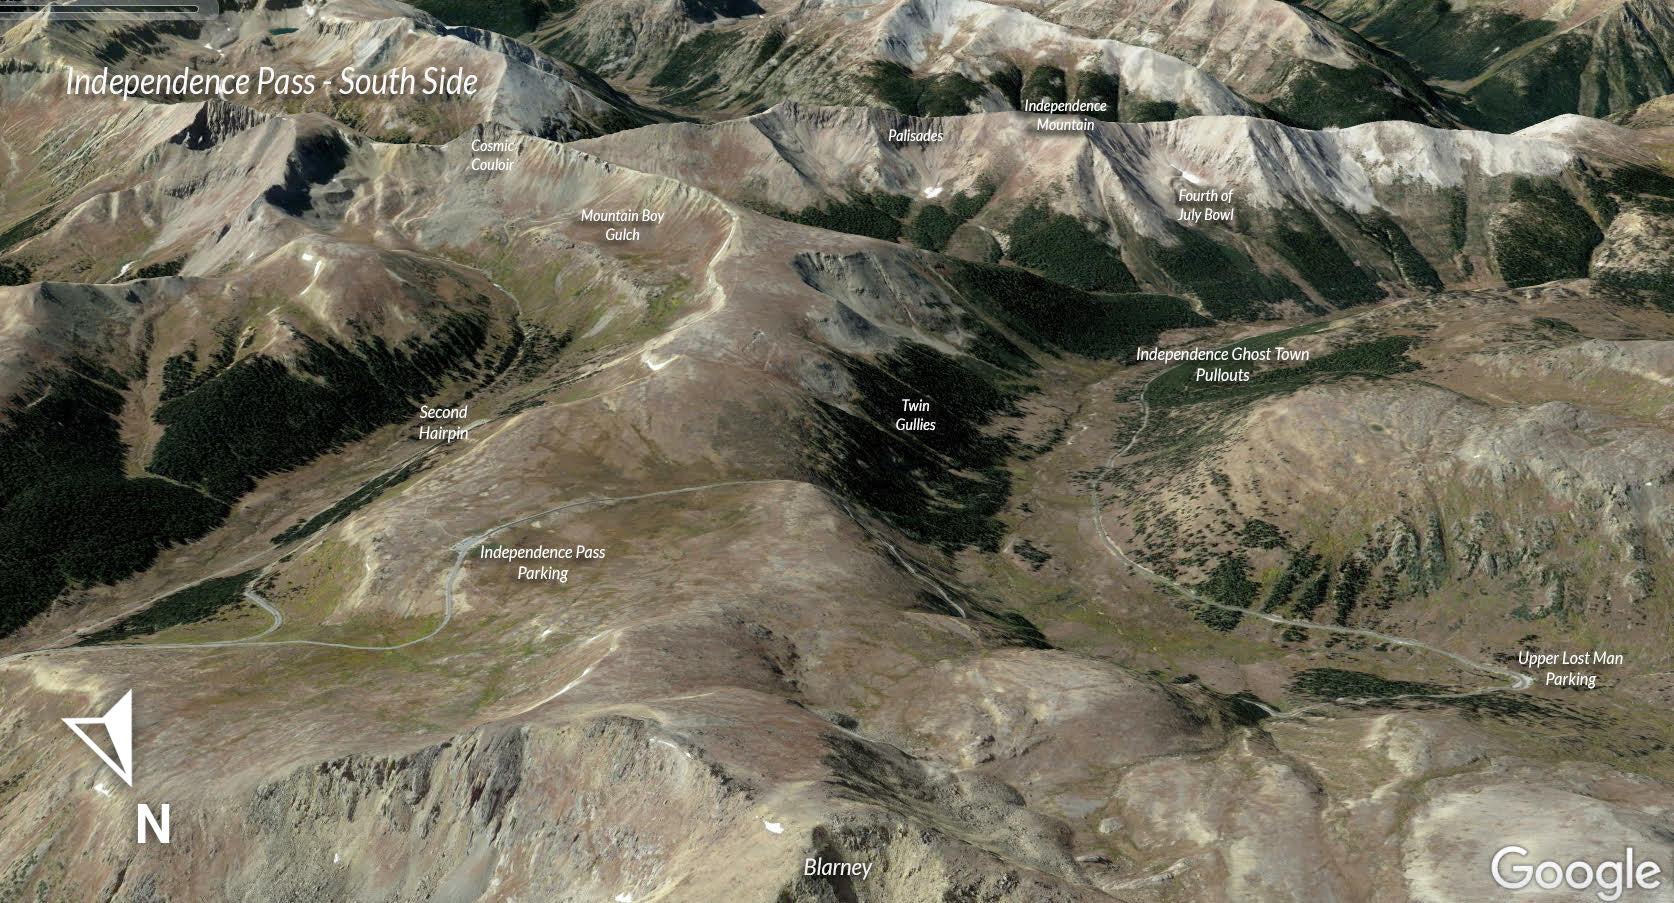 Google Earth view of Independence Pass South